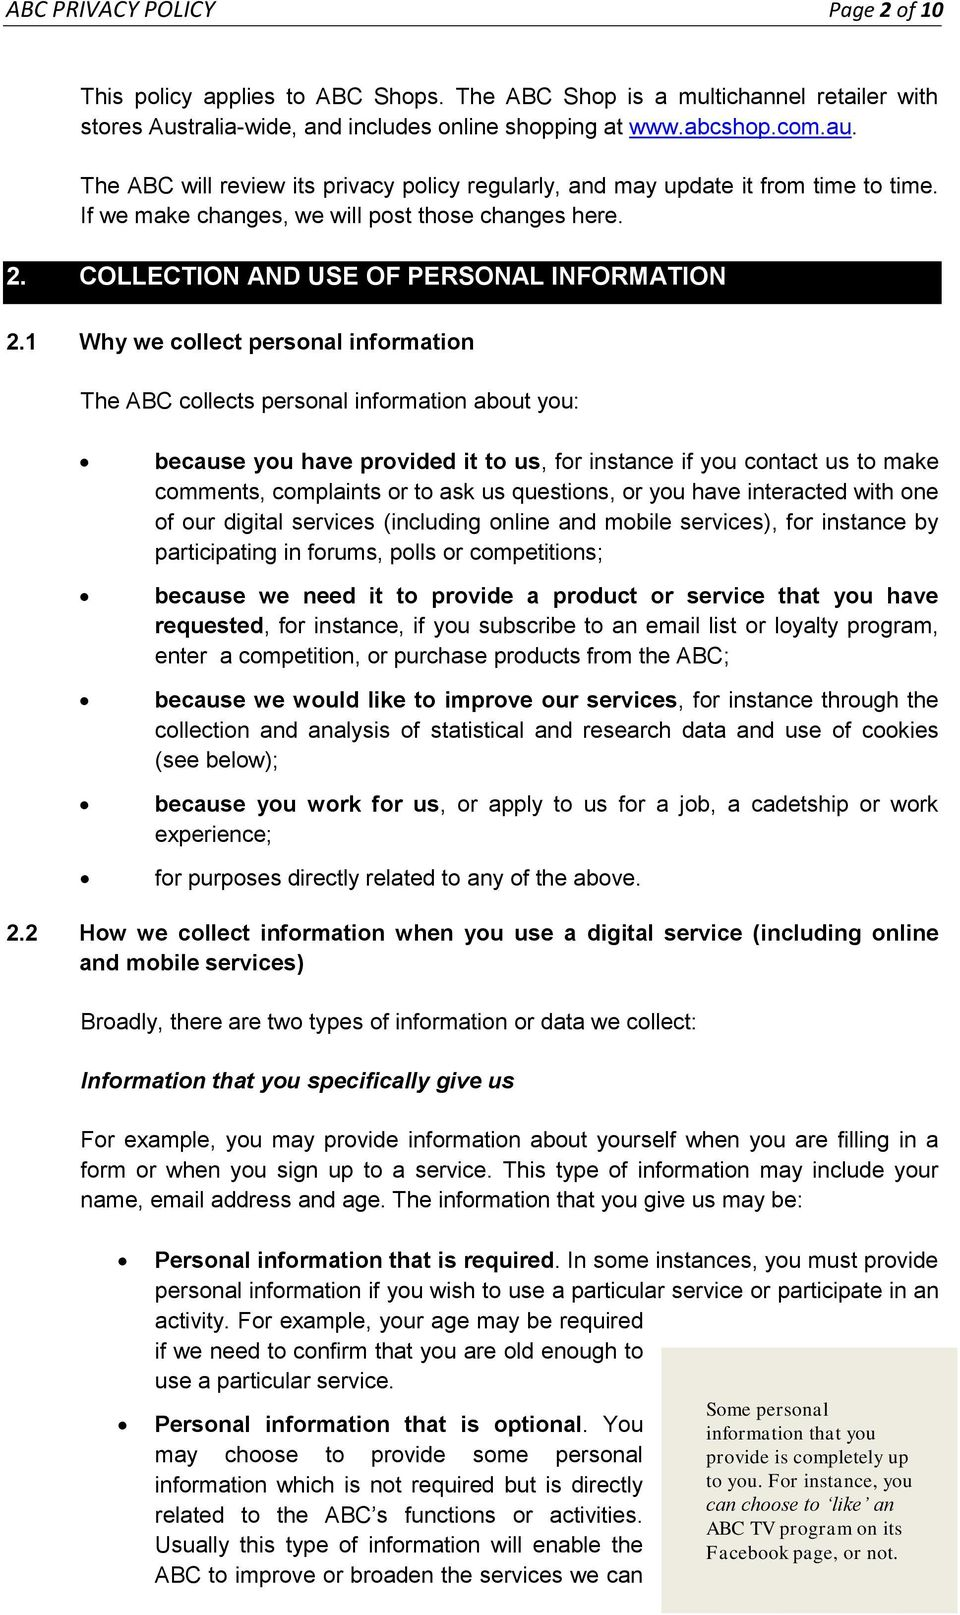 1 Why we collect personal information The ABC collects personal information about you: because you have provided it to us, for instance if you contact us to make comments, complaints or to ask us